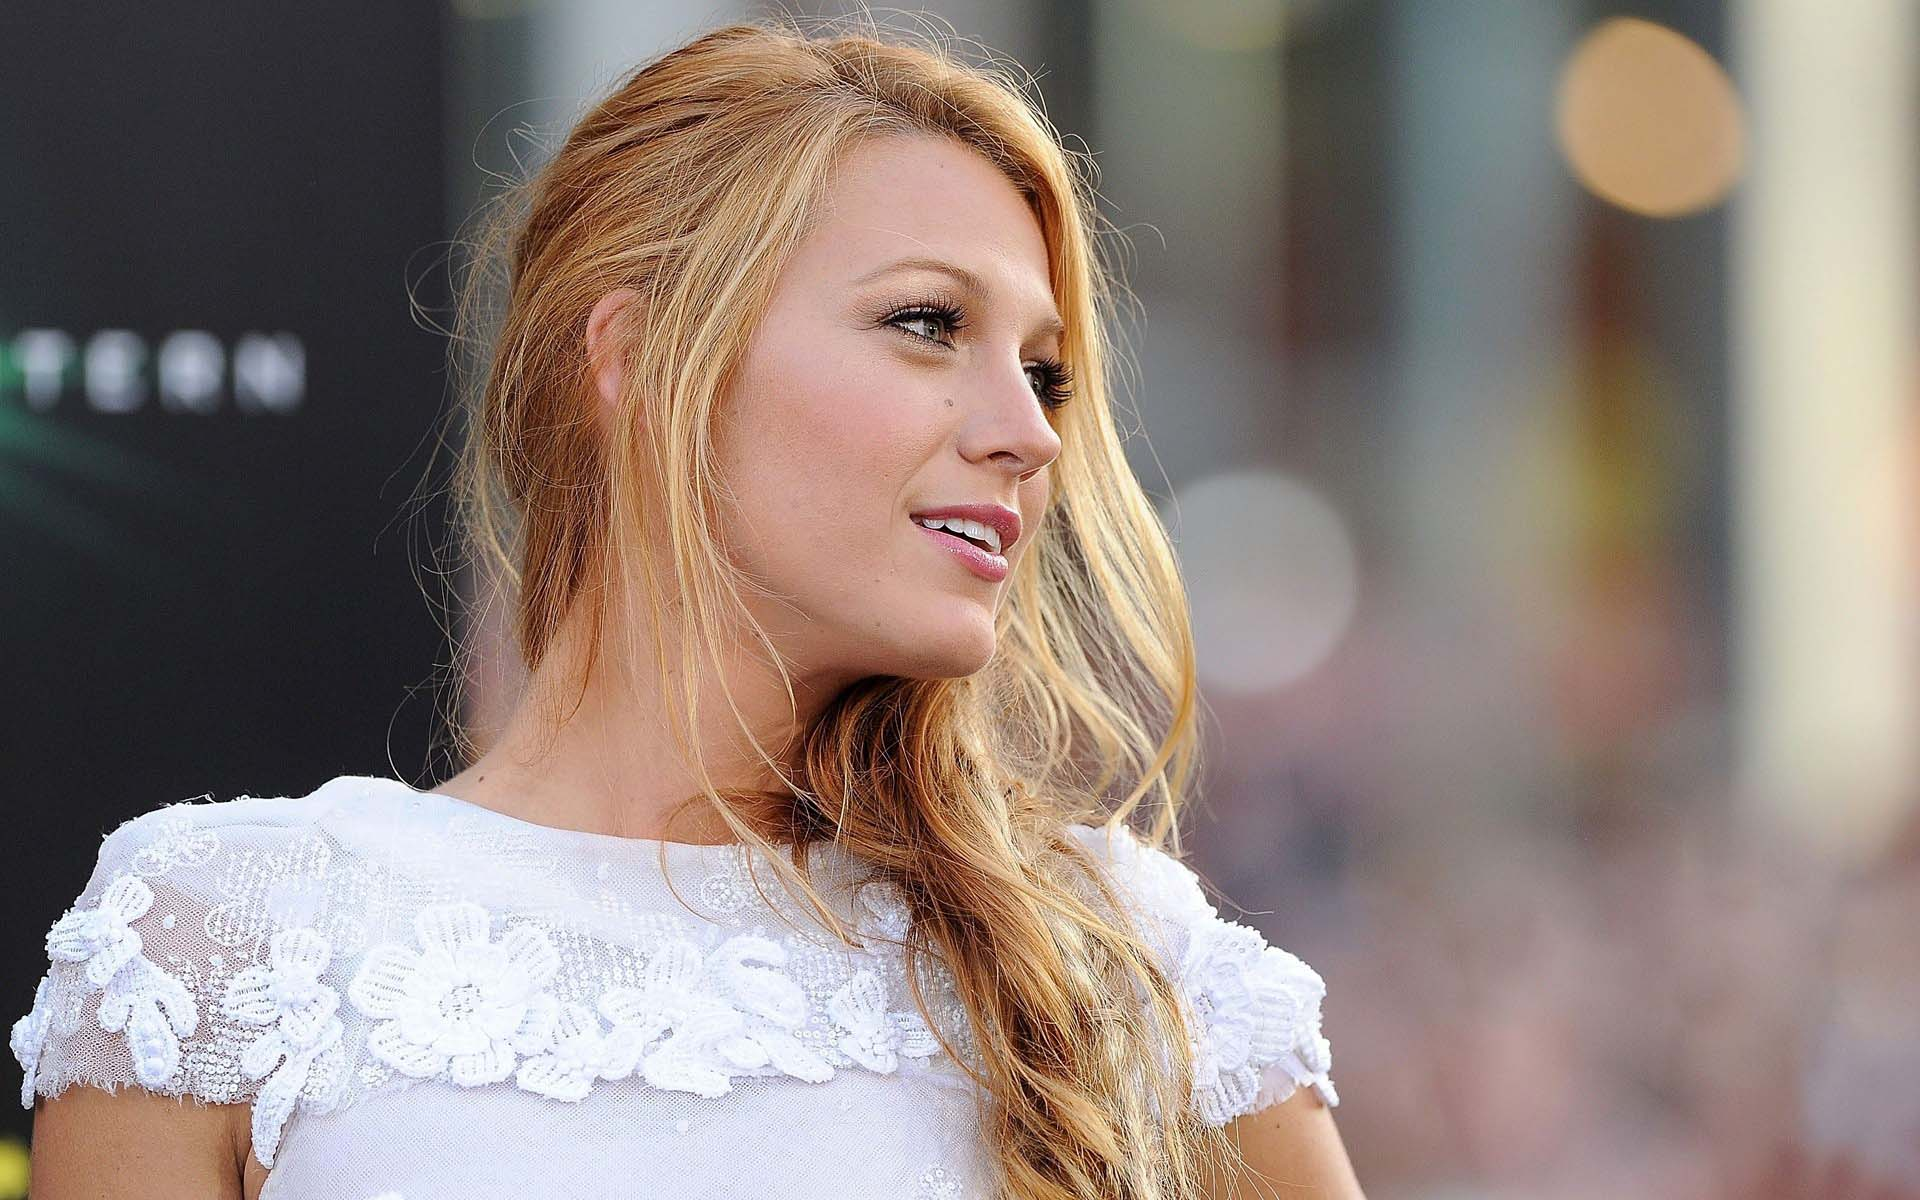 stylish blake lively look computer download free hd images